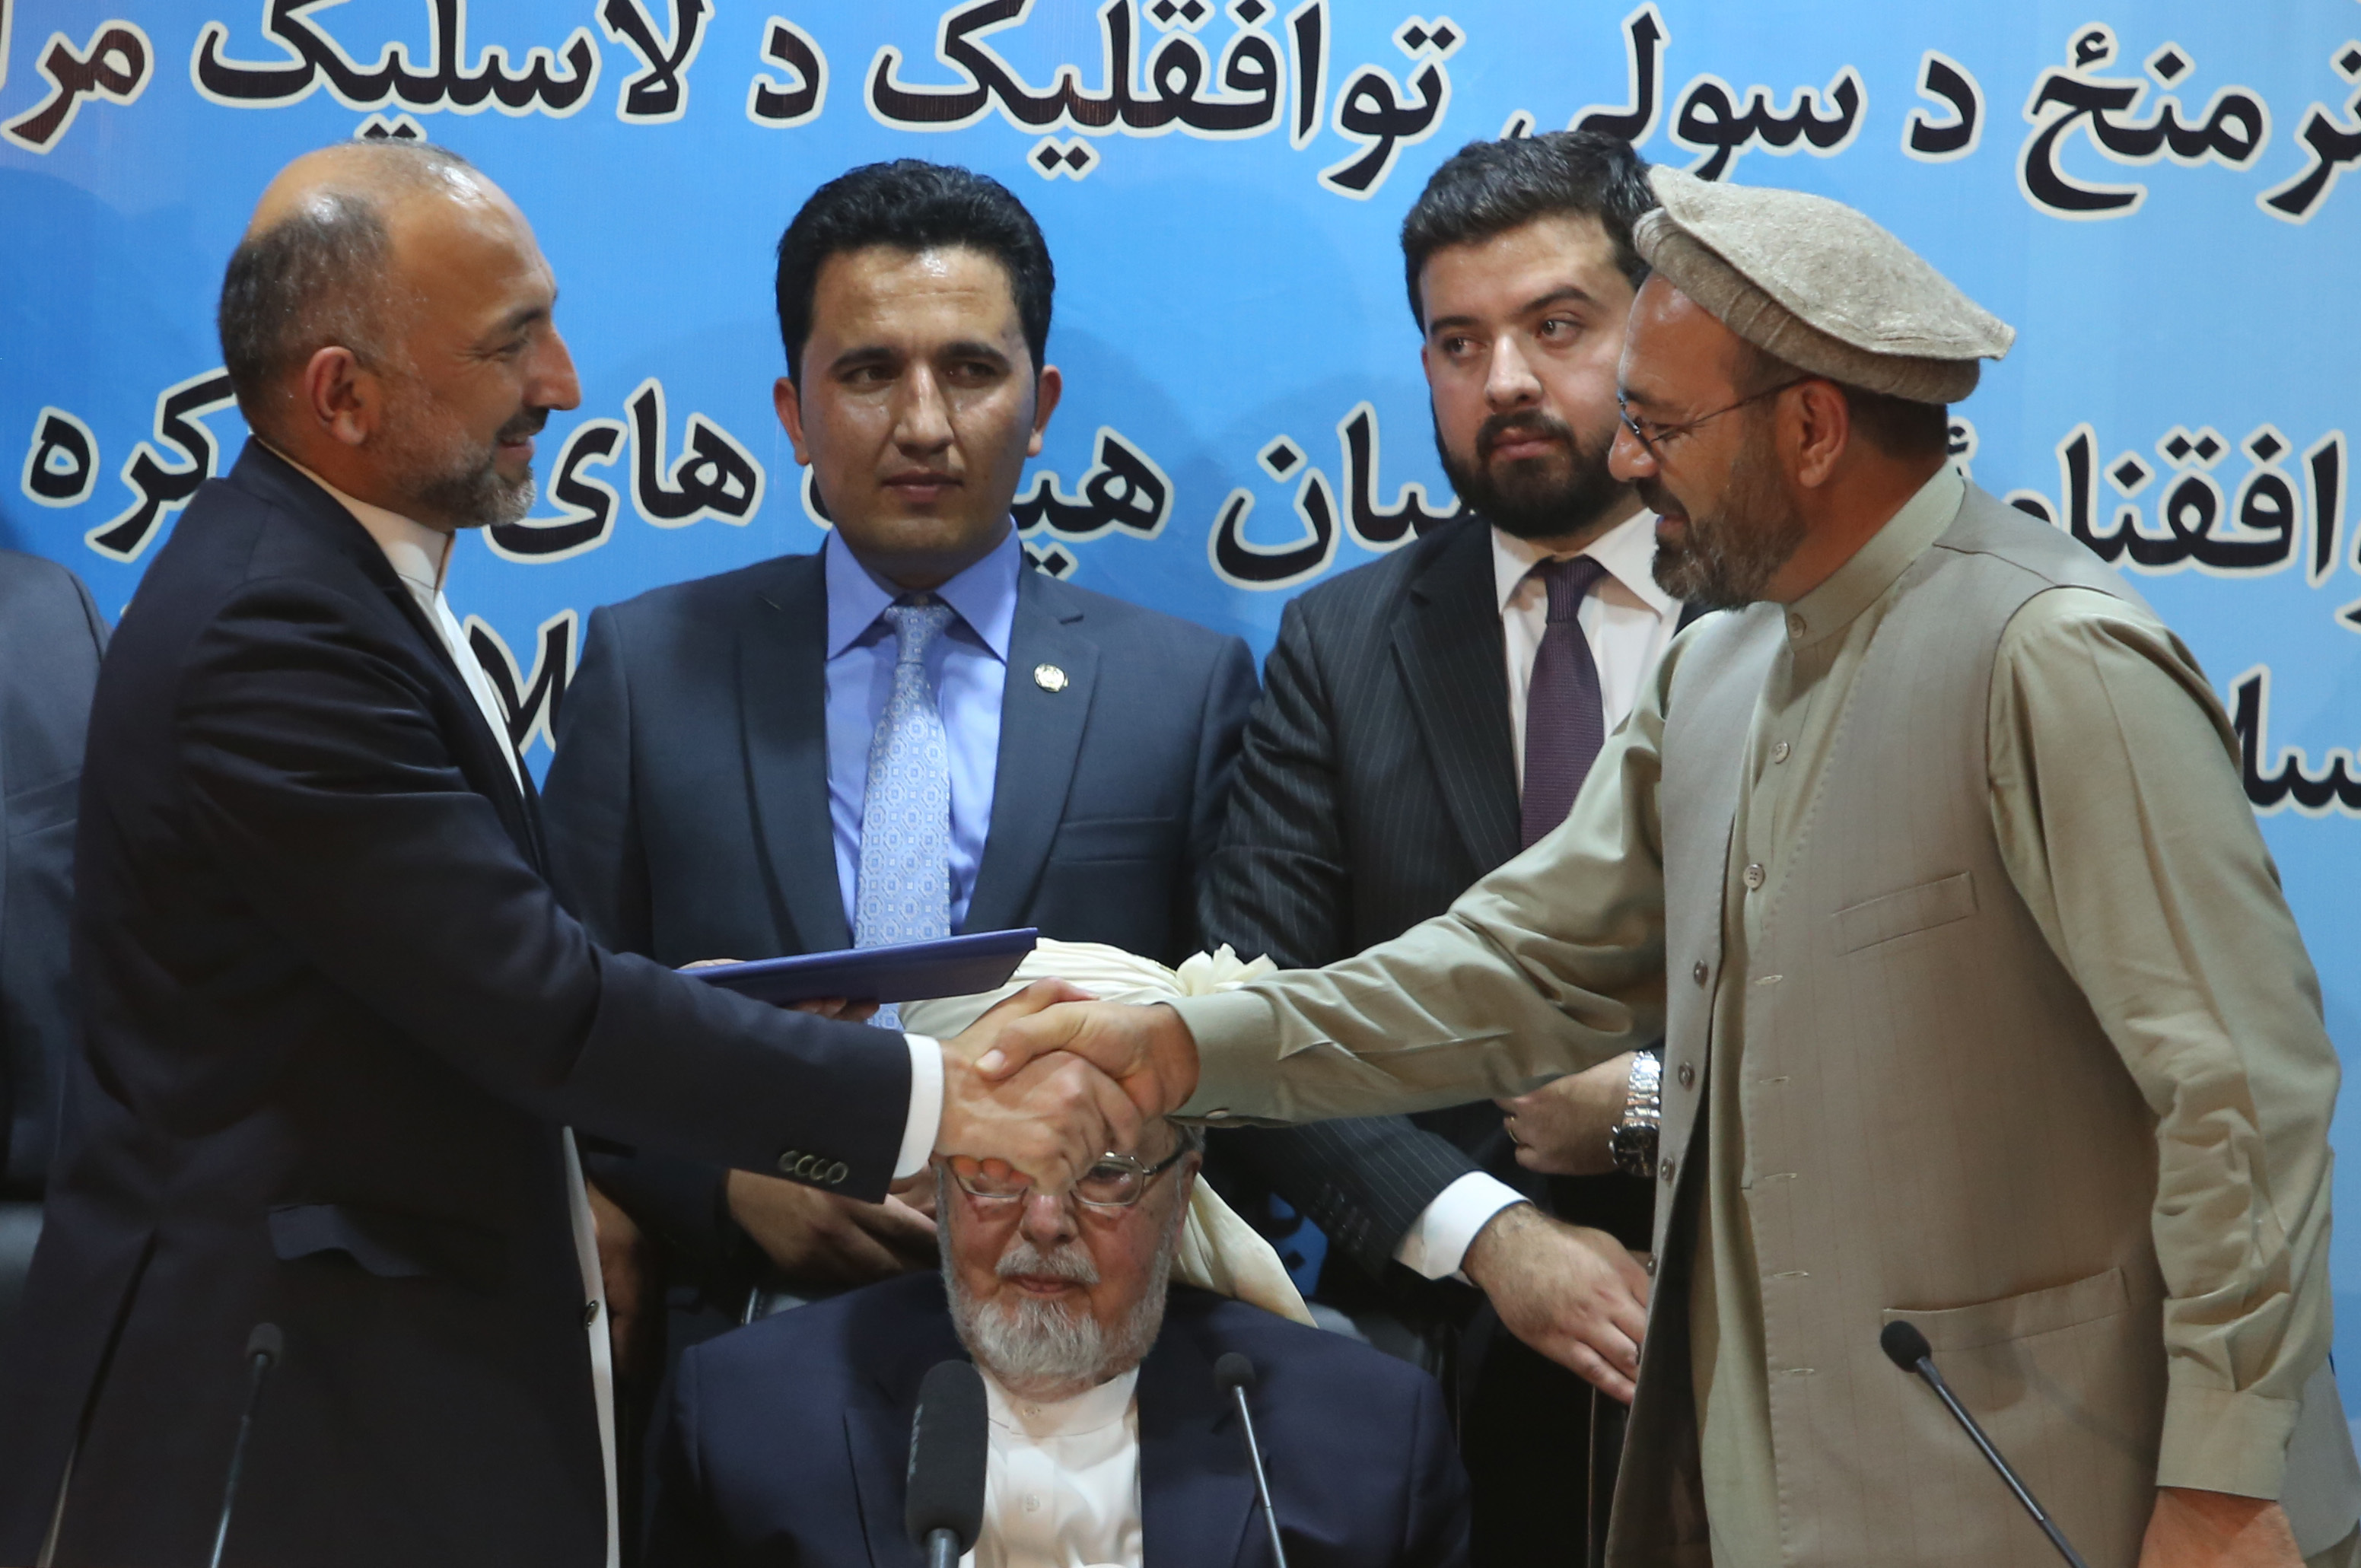 Afghanistan national security adviser Mohammad Hanif Atmar, left, and Amin Karim, representative of Gulbuddin Hekmatyar, right, shake hands after signing a peace deal in Kabul, Afghanistan, Thursday, Sept. 22, 2016.